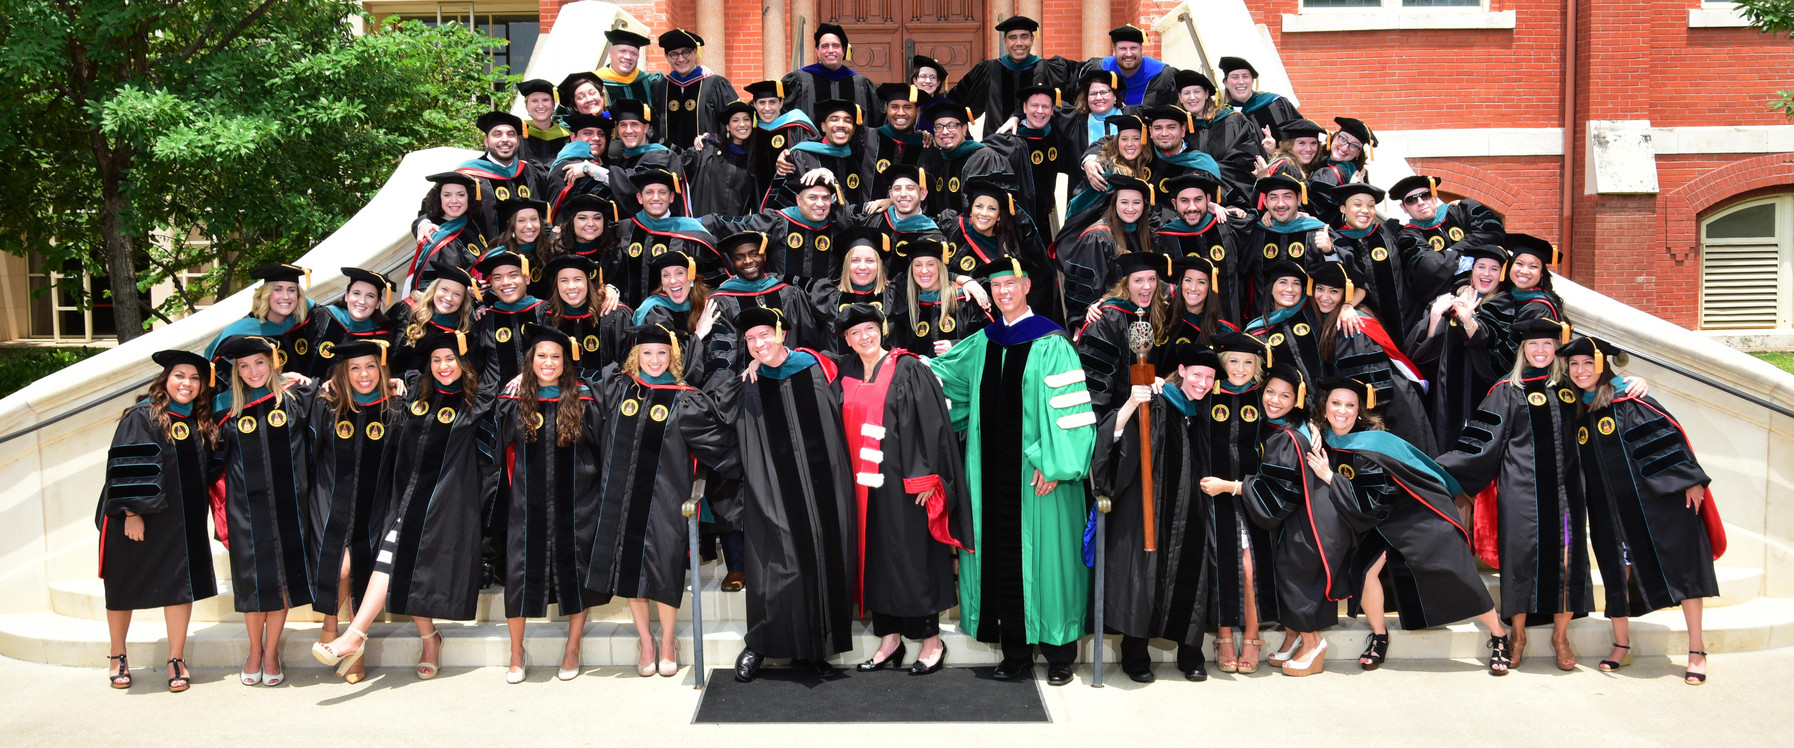 Incarnate Word College became a university in 1996. The university graduates more Hispanic students than any other university in the United States. Many graduates are first-generation university students.  Pictured: the 2015 graduating class of the School of Physical Therapy.